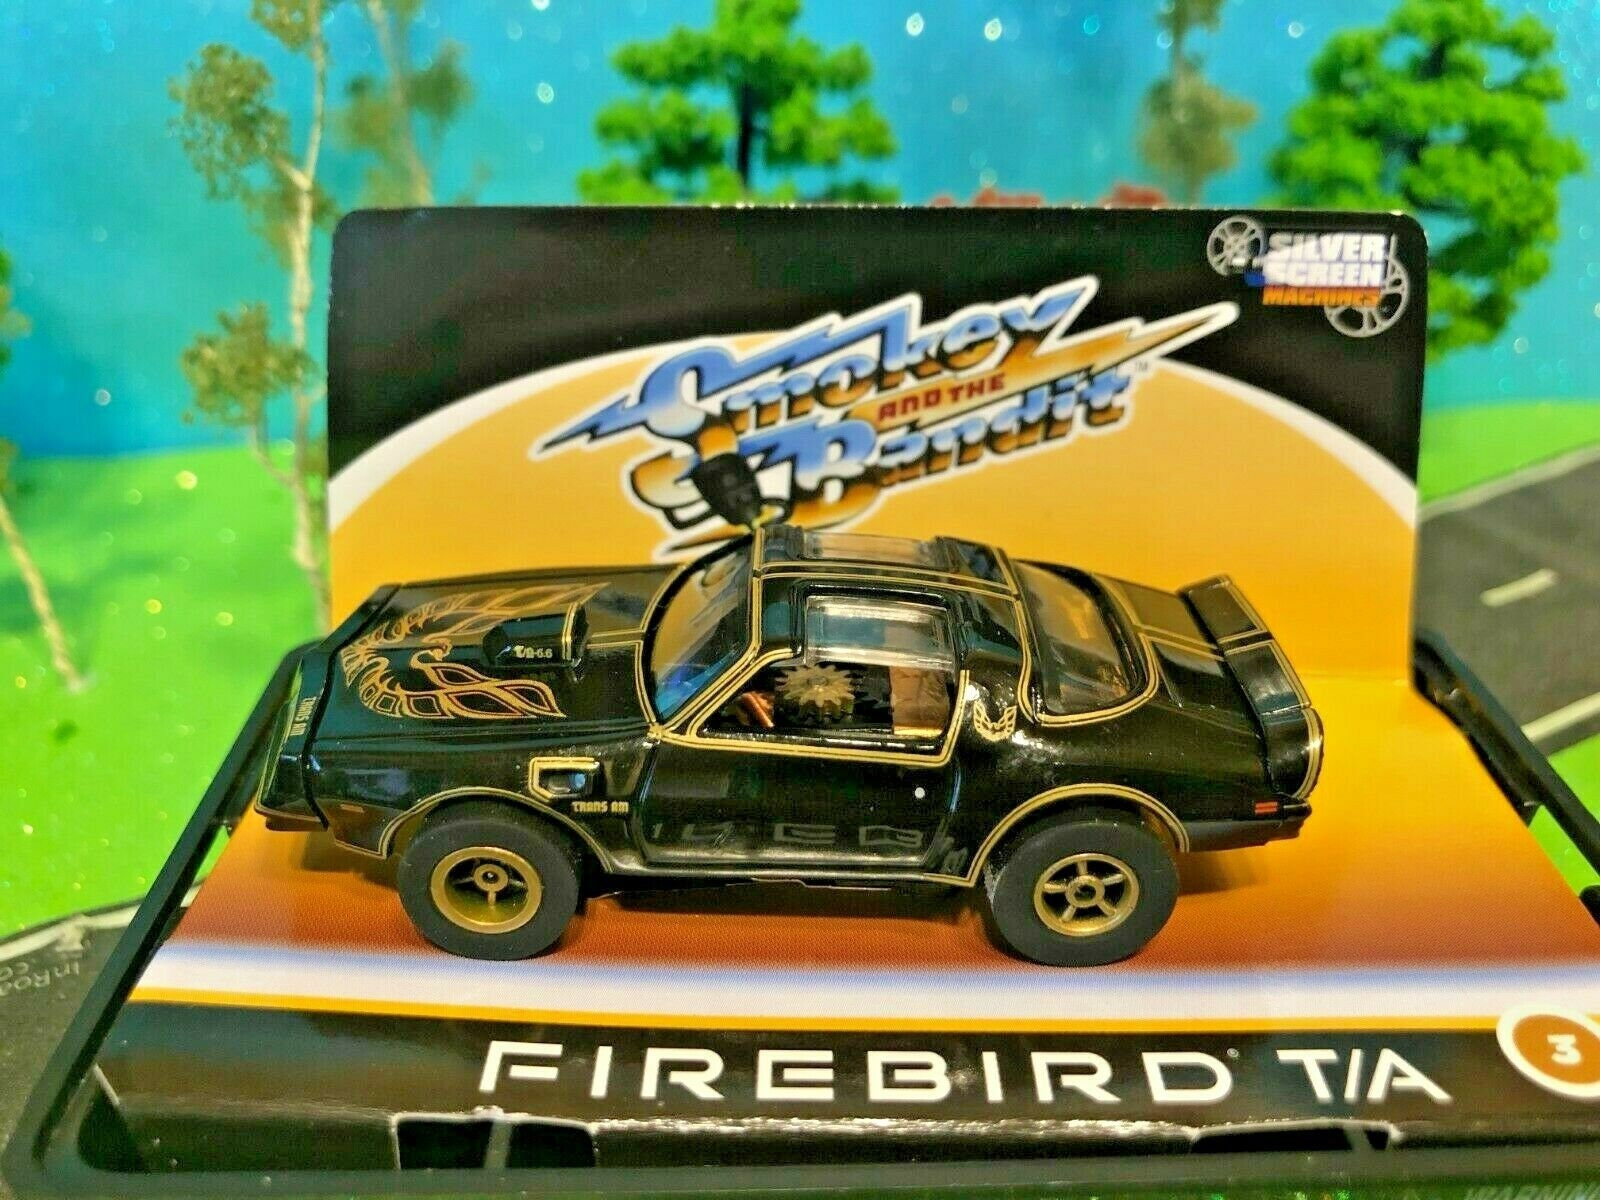 Smokey and the Bandit #2 Limited edition die-cast bandit/'s 1:64 1980 Pontiac